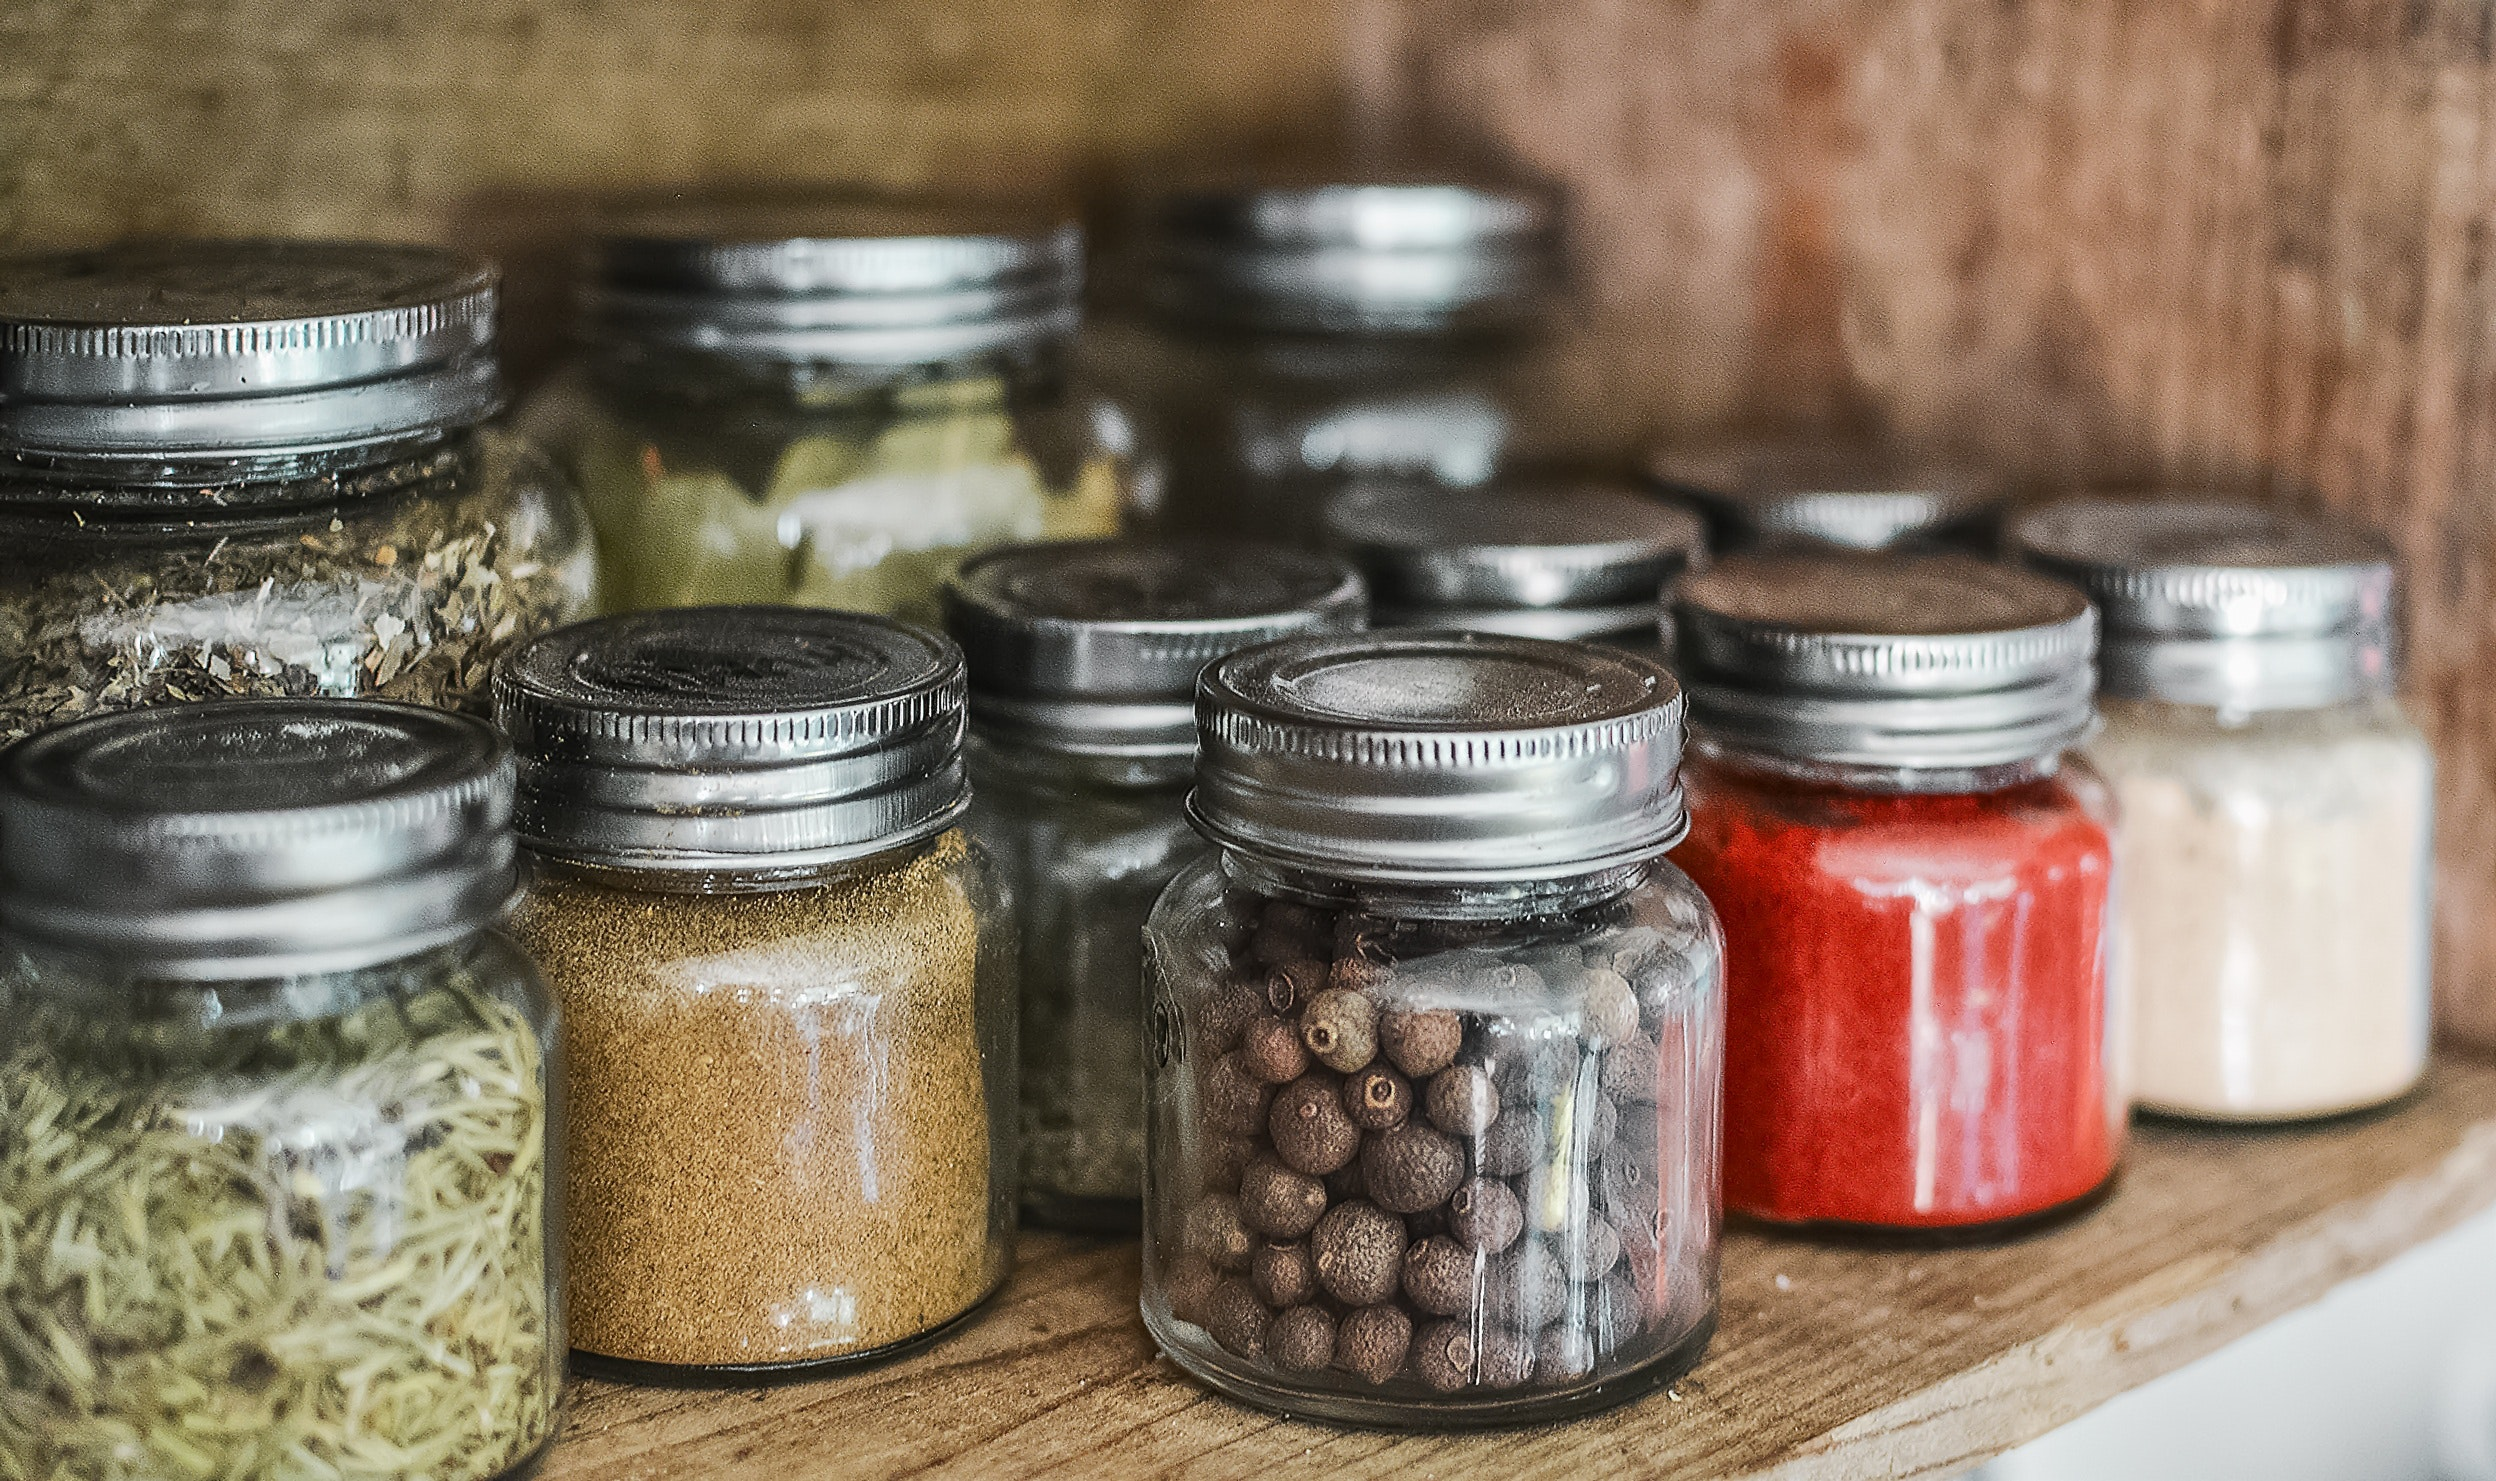 Spices in a jar